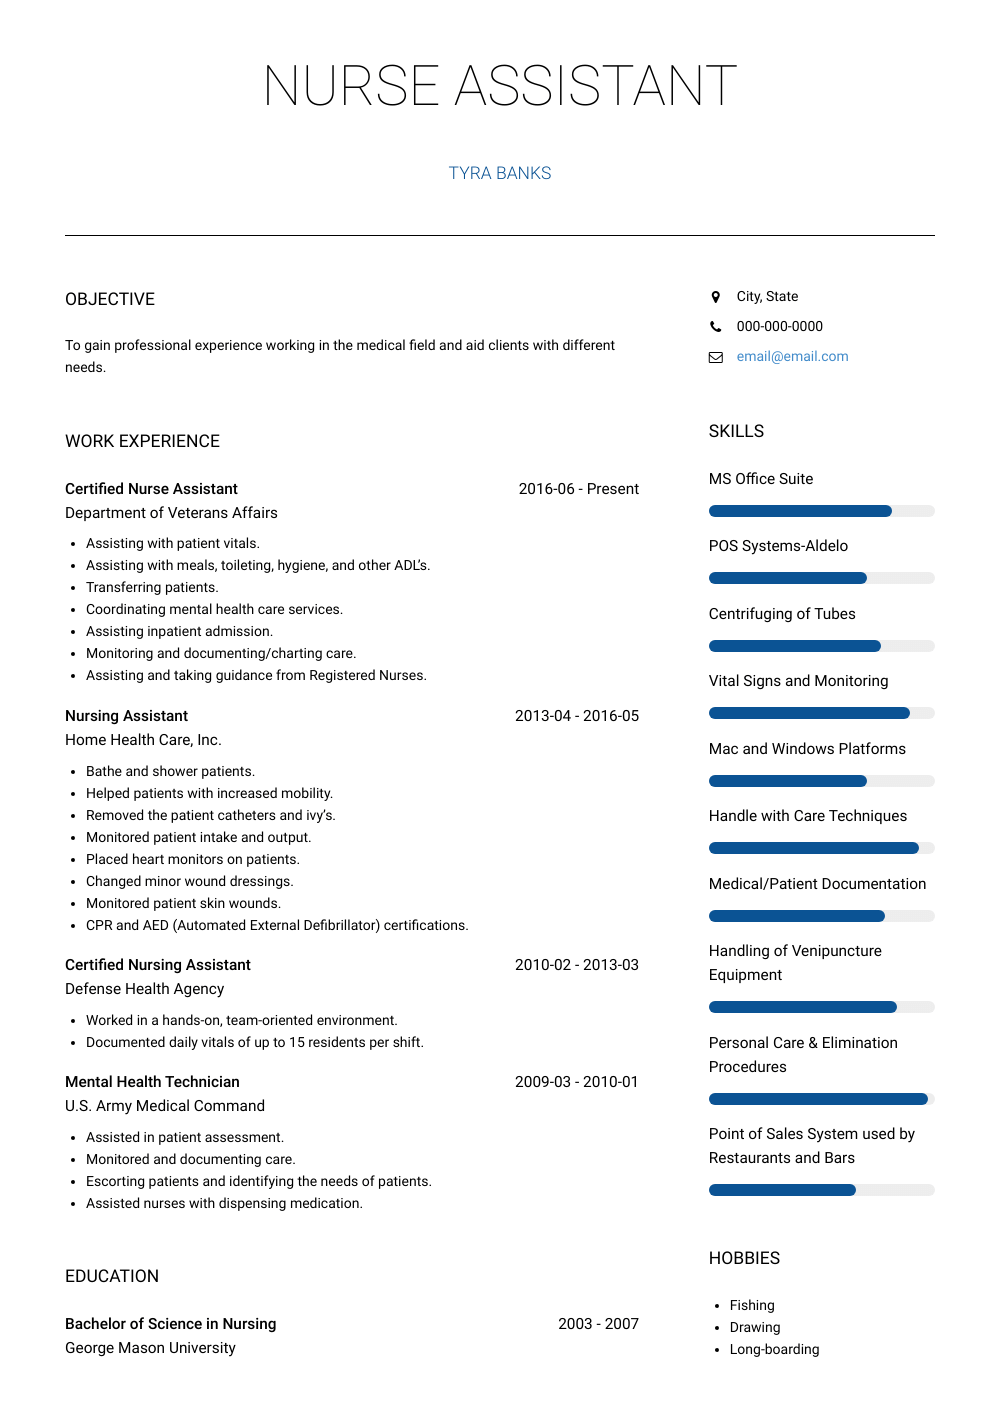 Nursing Assistant Resume Sample and Template